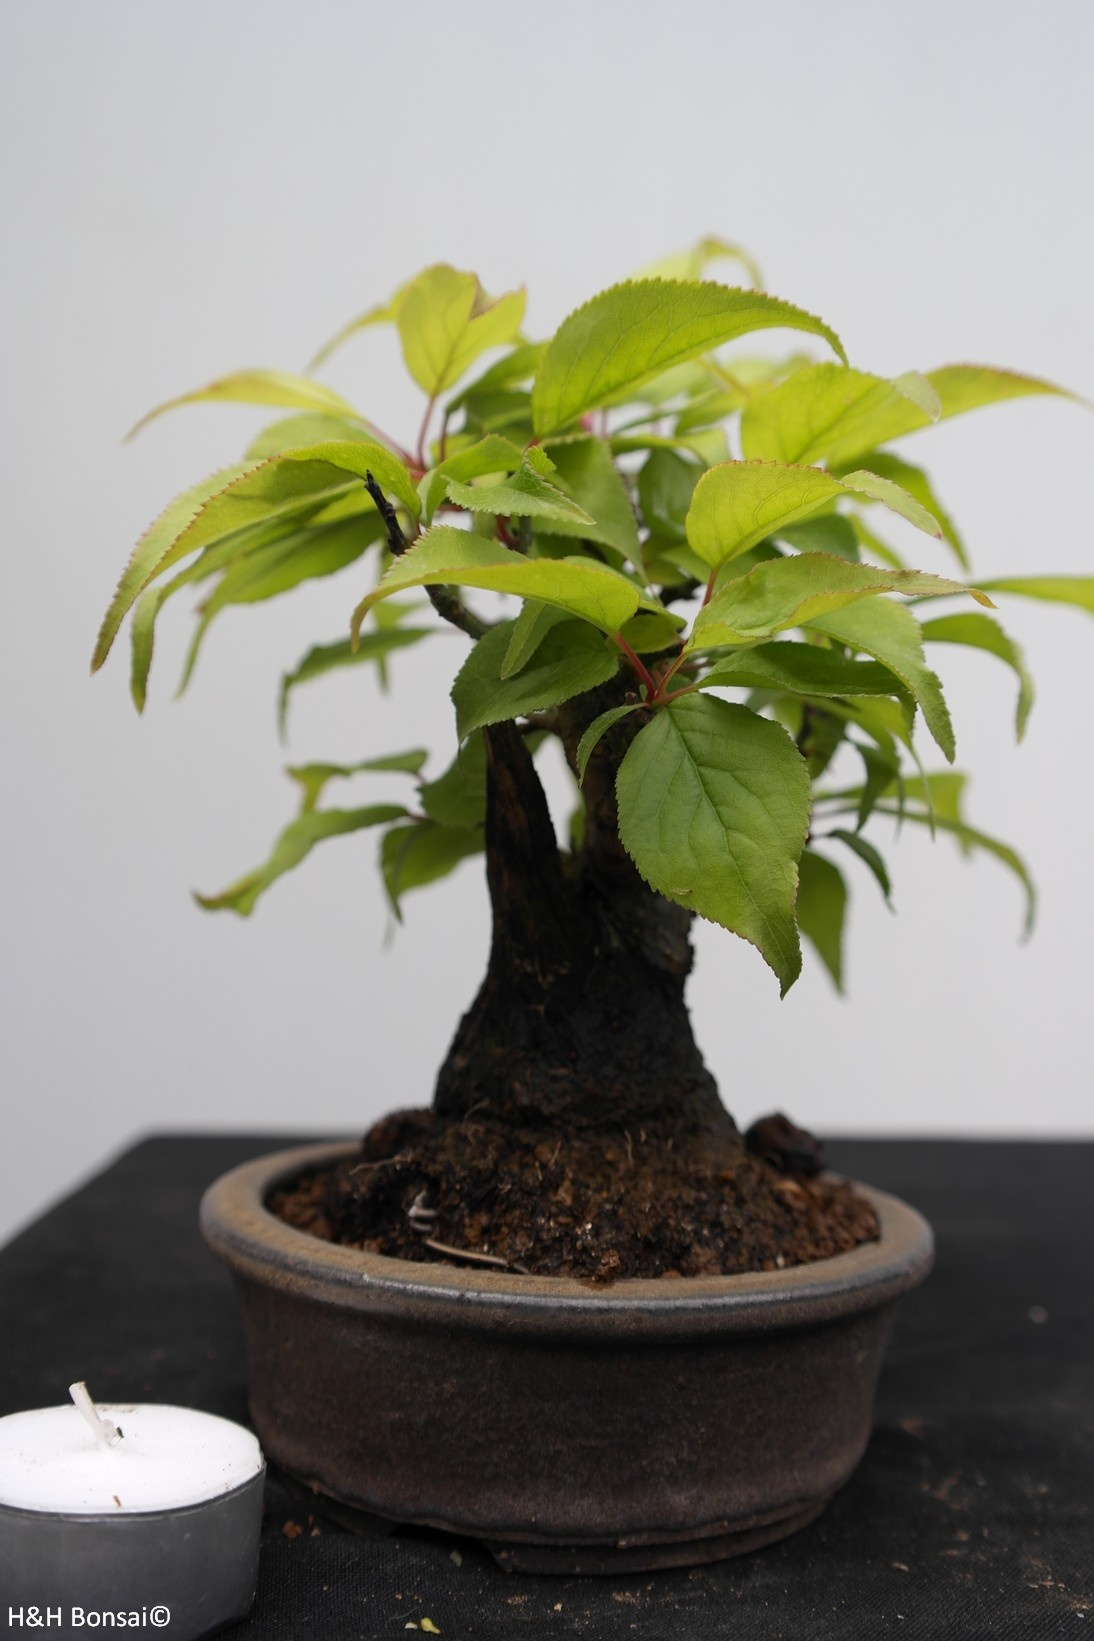 Bonsai Shohin Abricotier du Japon, Prunus mume, no. 7780